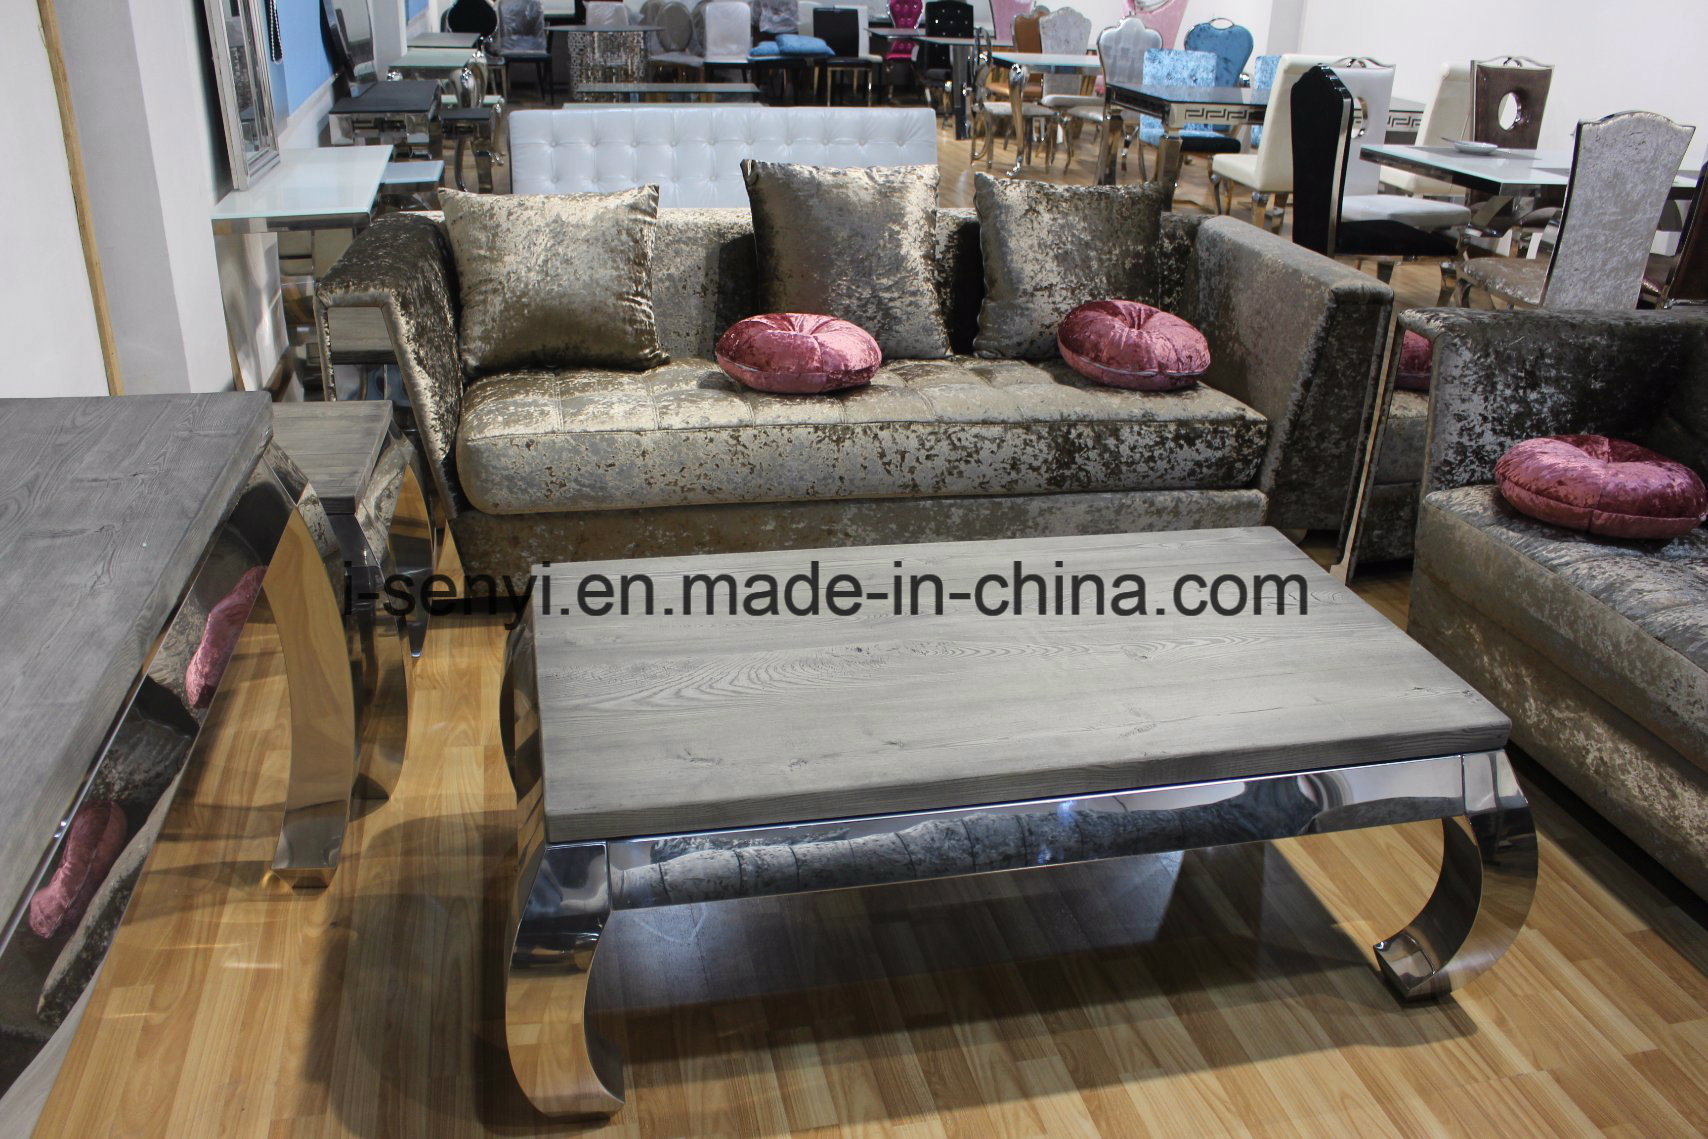 China Modern Italian Living Room Furniture Hotel Reception Sofa 1 Seat Home